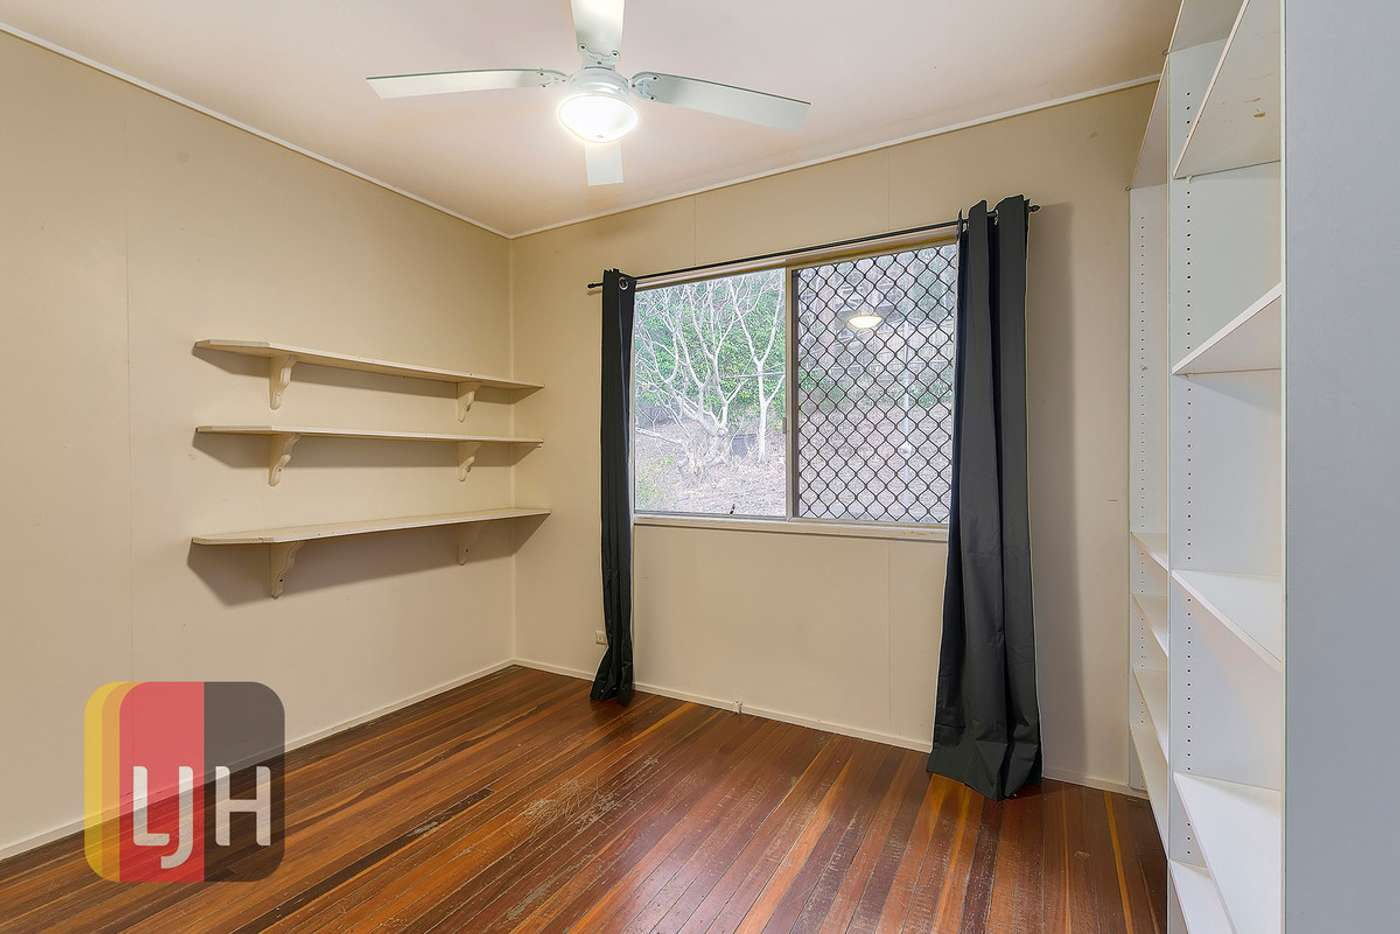 Seventh view of Homely house listing, 74 Mornington Street, Alderley QLD 4051